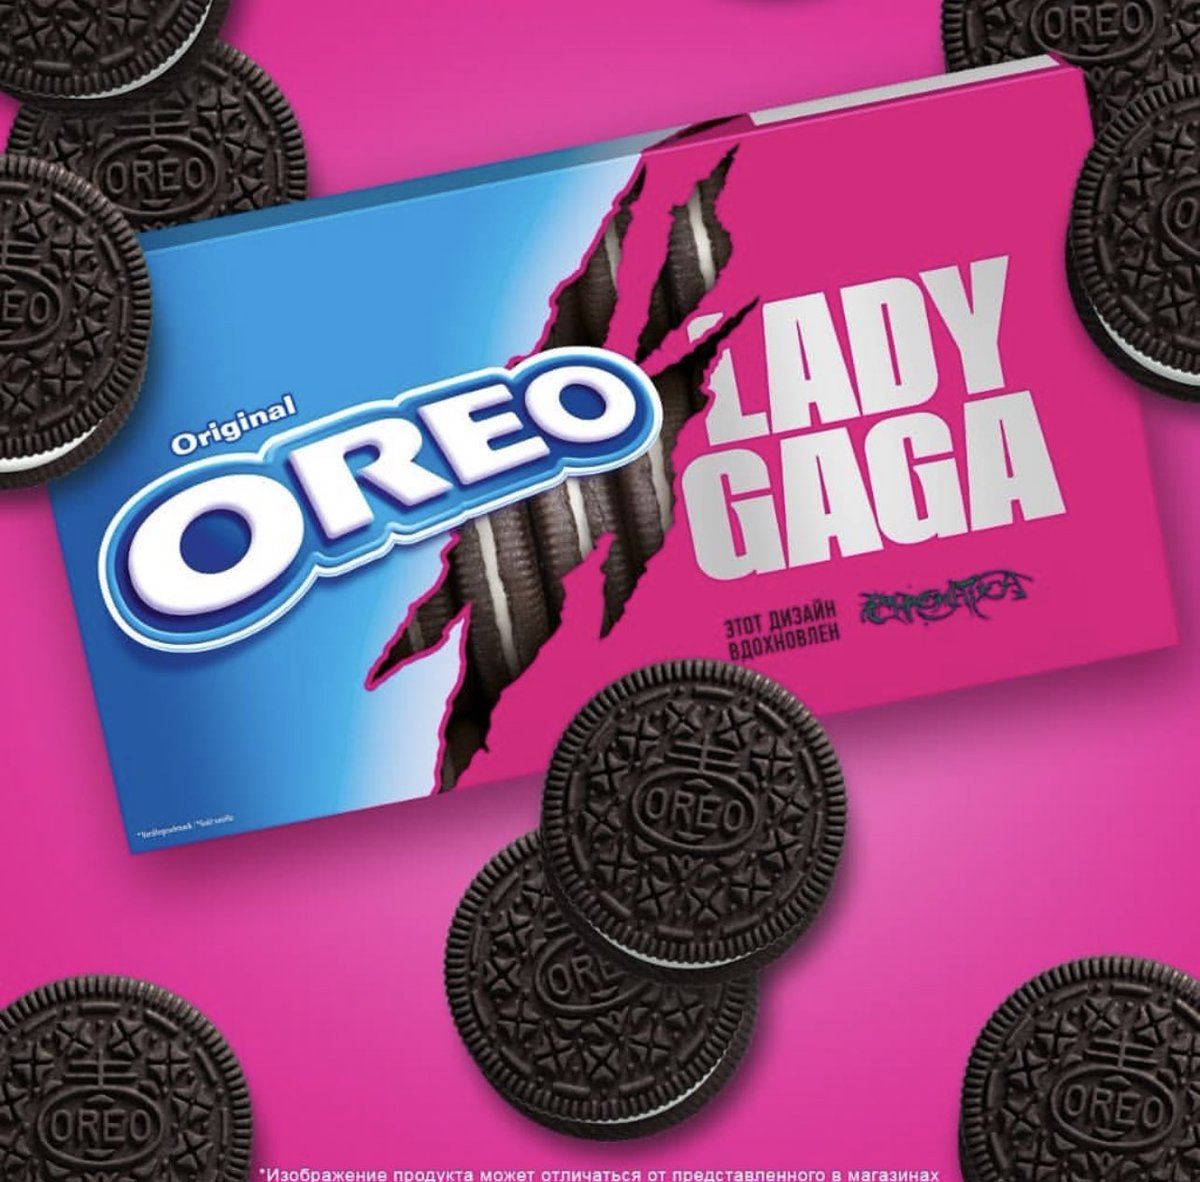 Gaga Now On Twitter Ladygaga S Chromatica Oreo Will Be Available In Russia